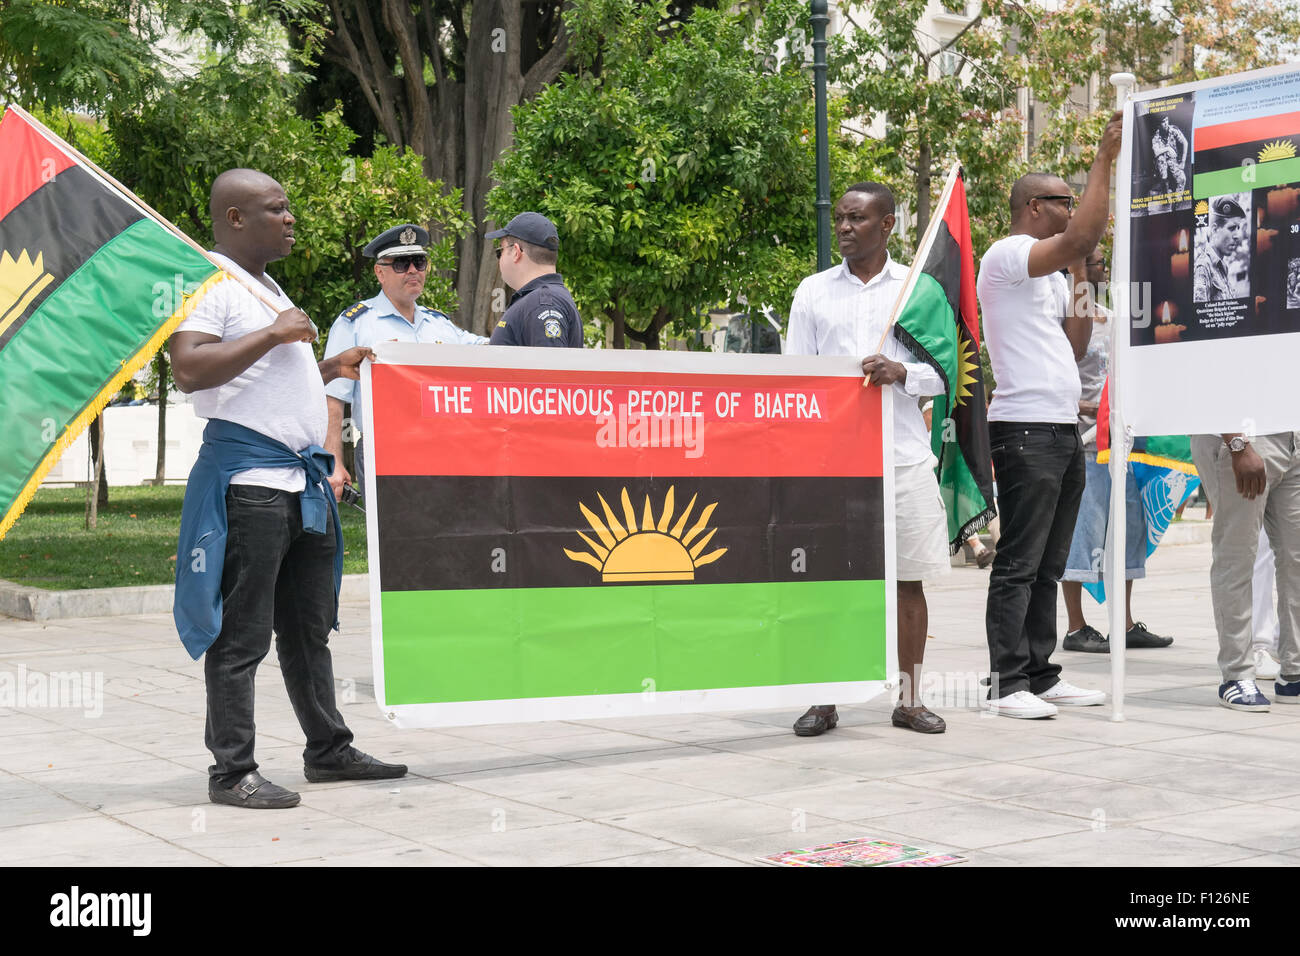 Biafra flag stock photos biafra flag stock images alamy date 30 may 2015 location sintagma in athens greece event the thecheapjerseys Image collections